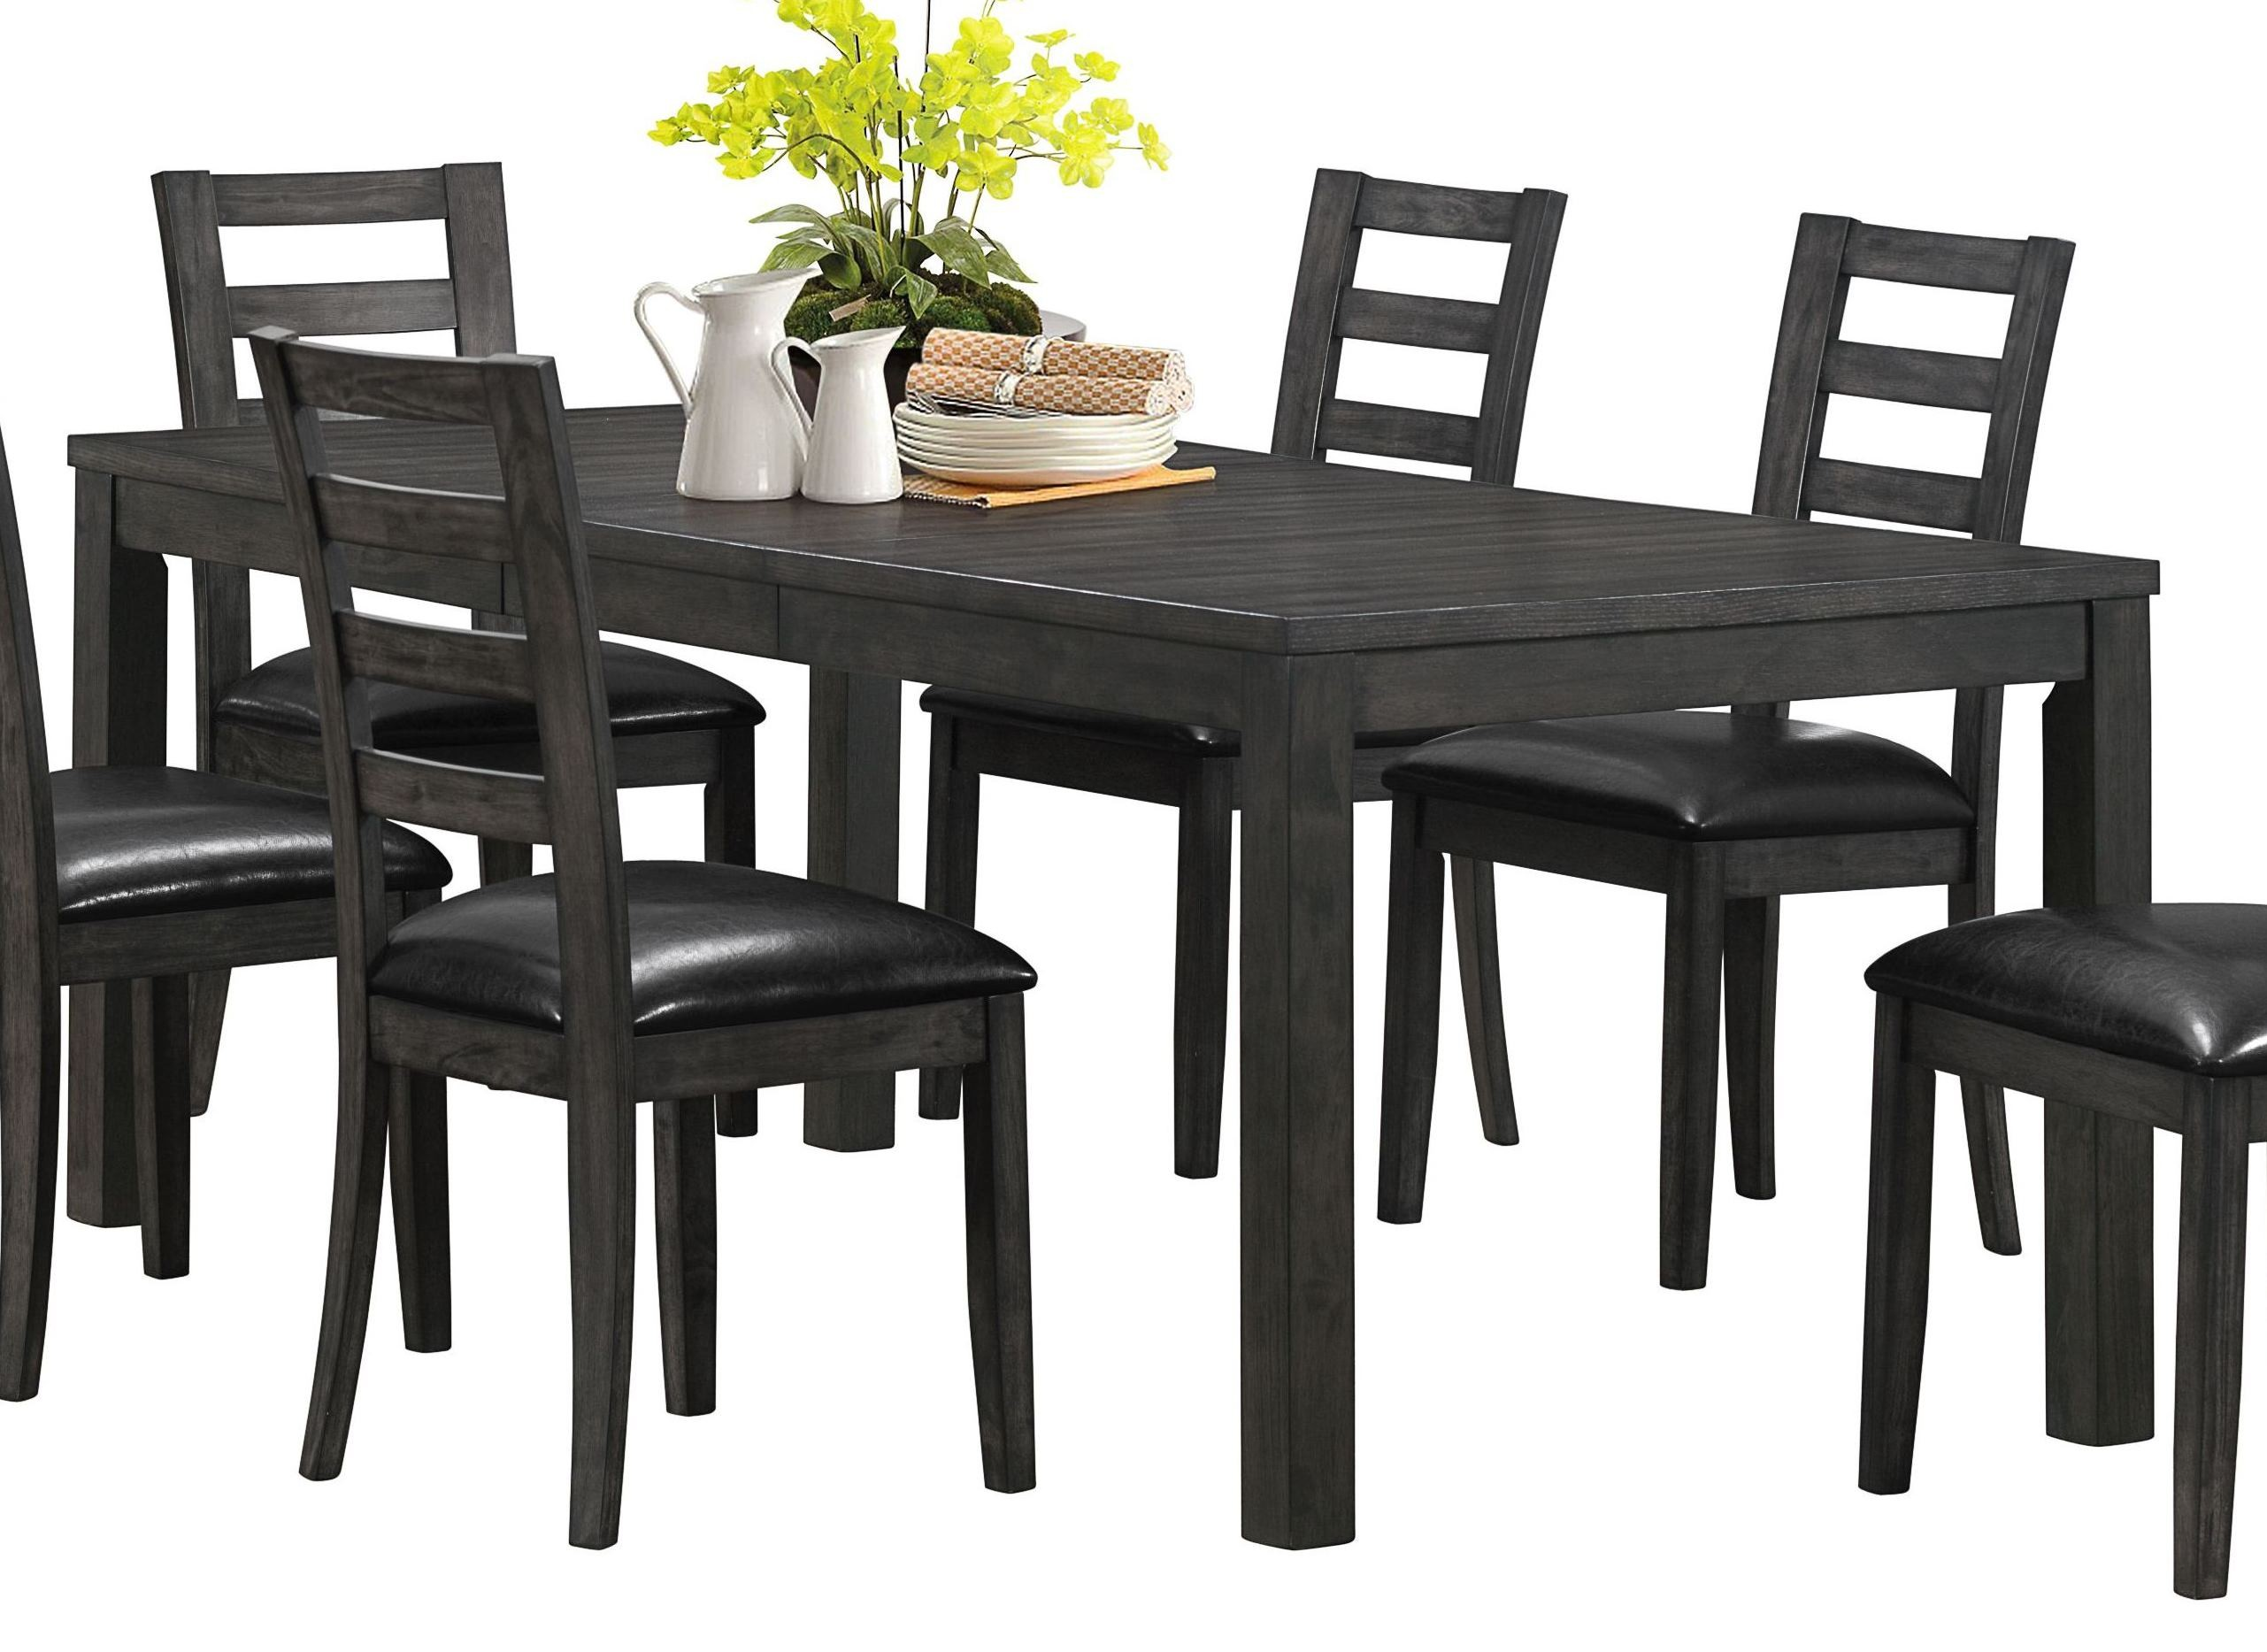 Charcoal Gray Top Dining Table From Monarch 1600